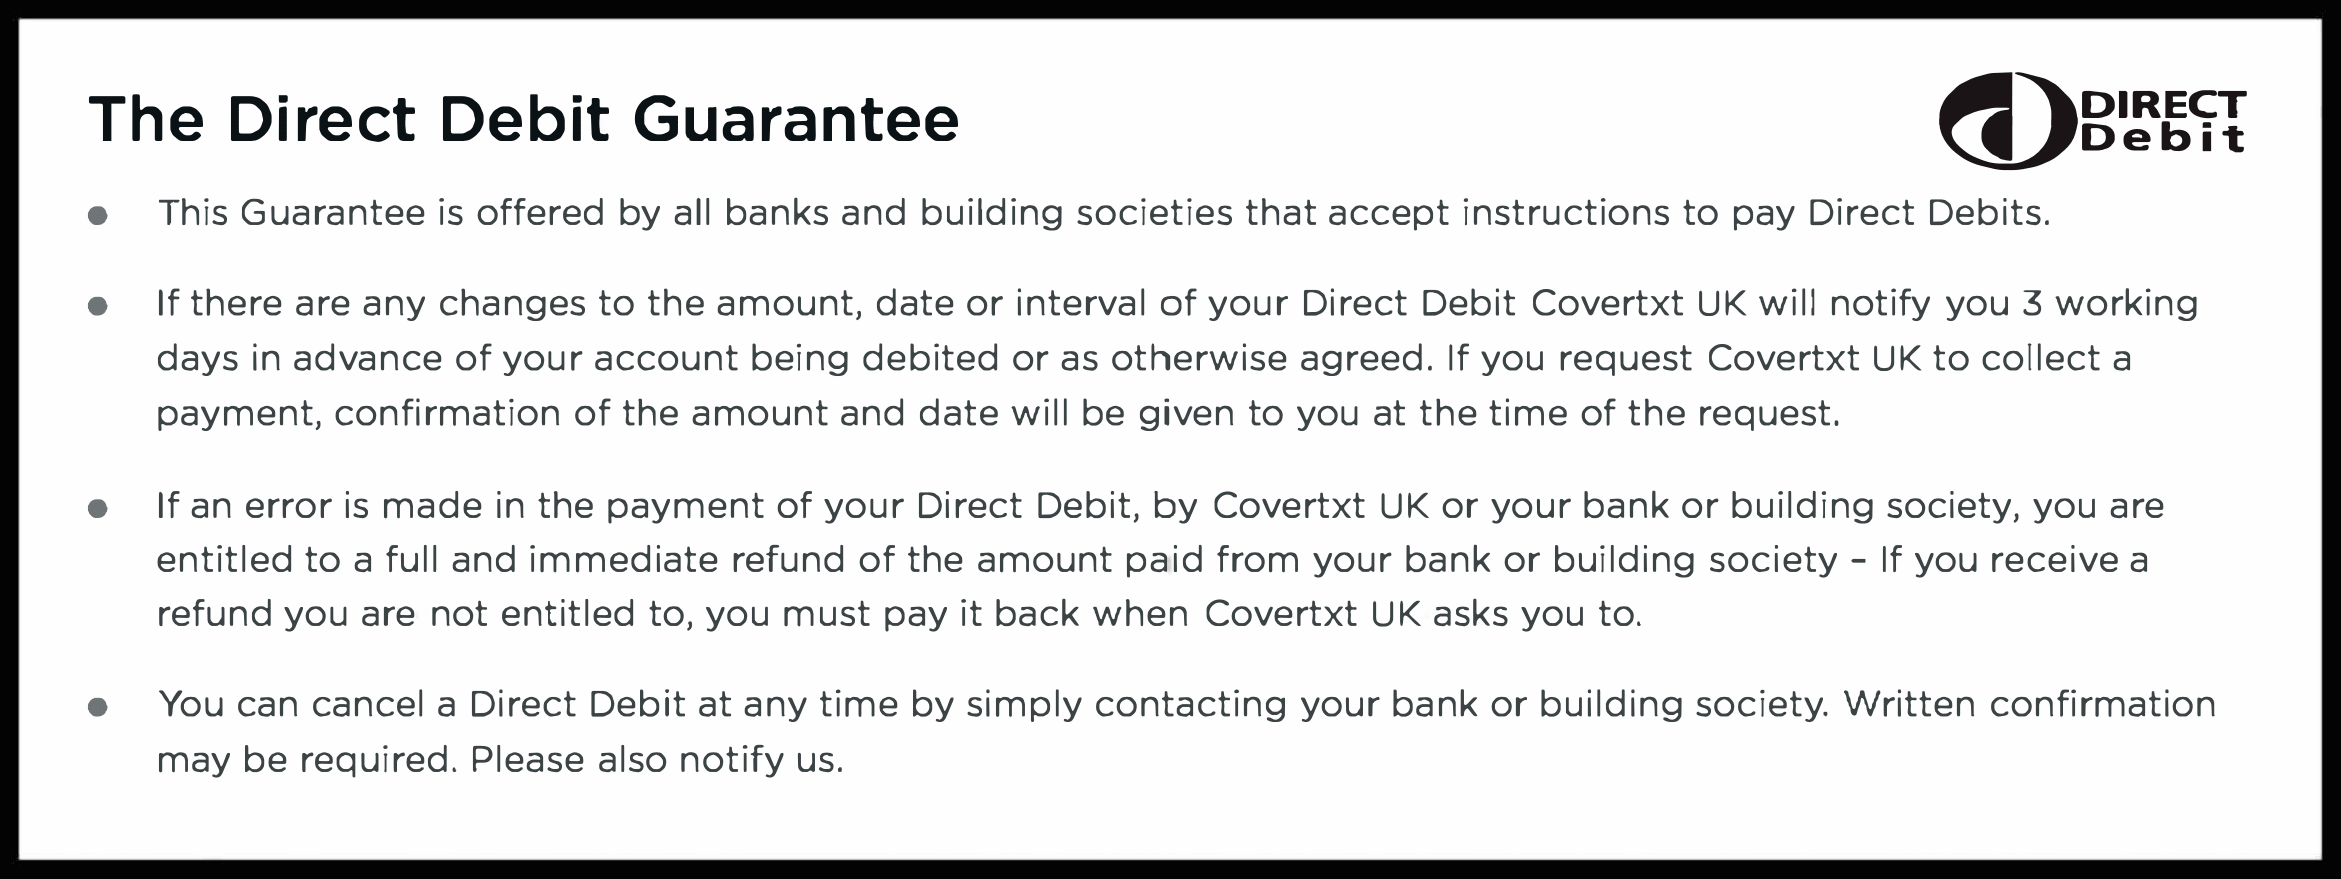 Direct Debit Image